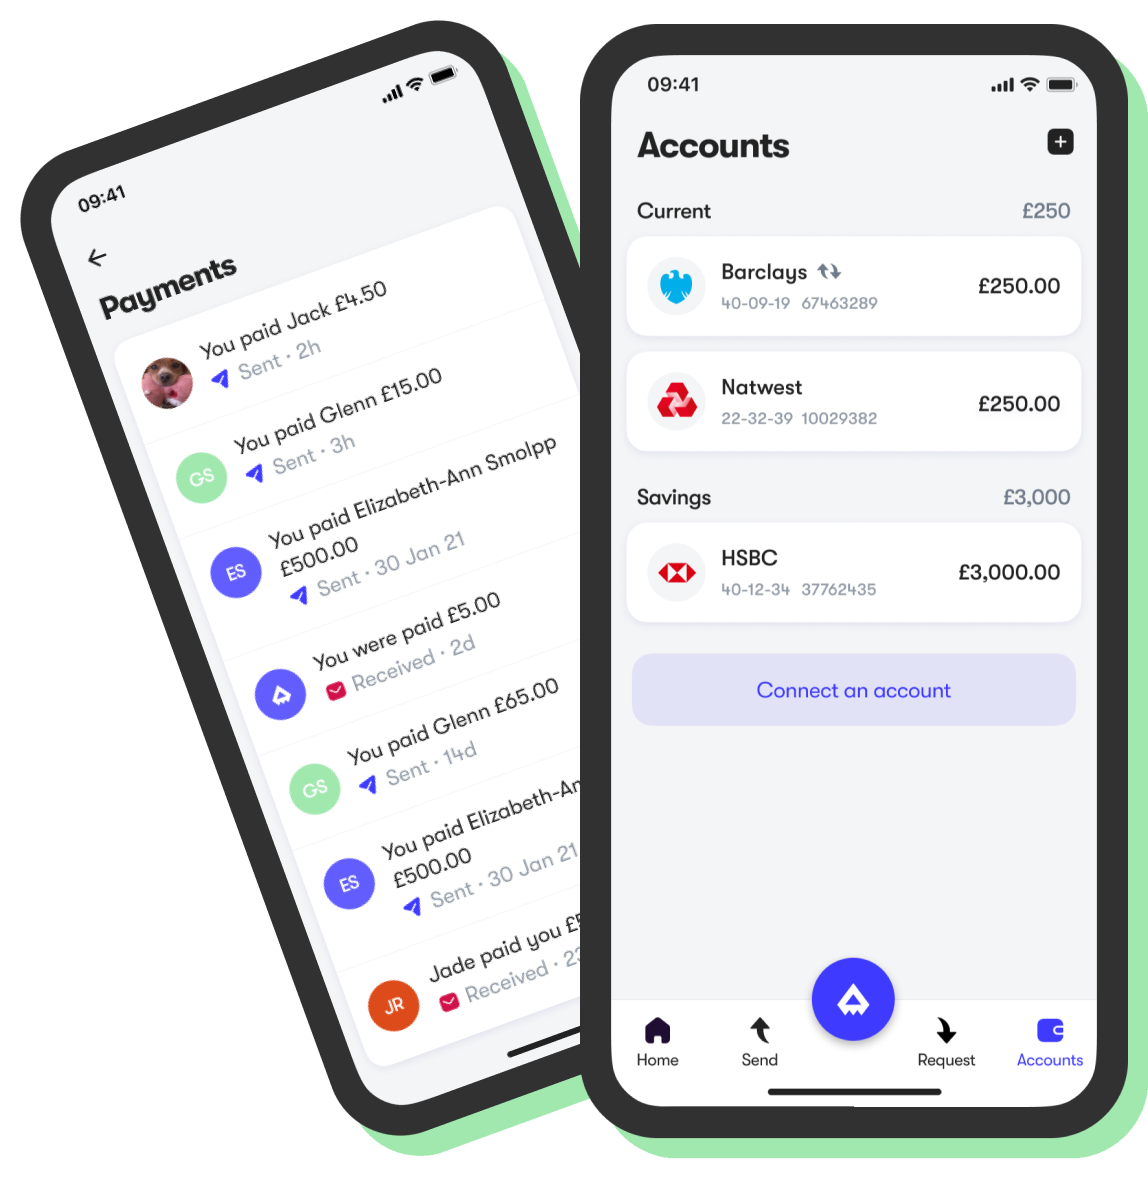 Screens for accounts and payments